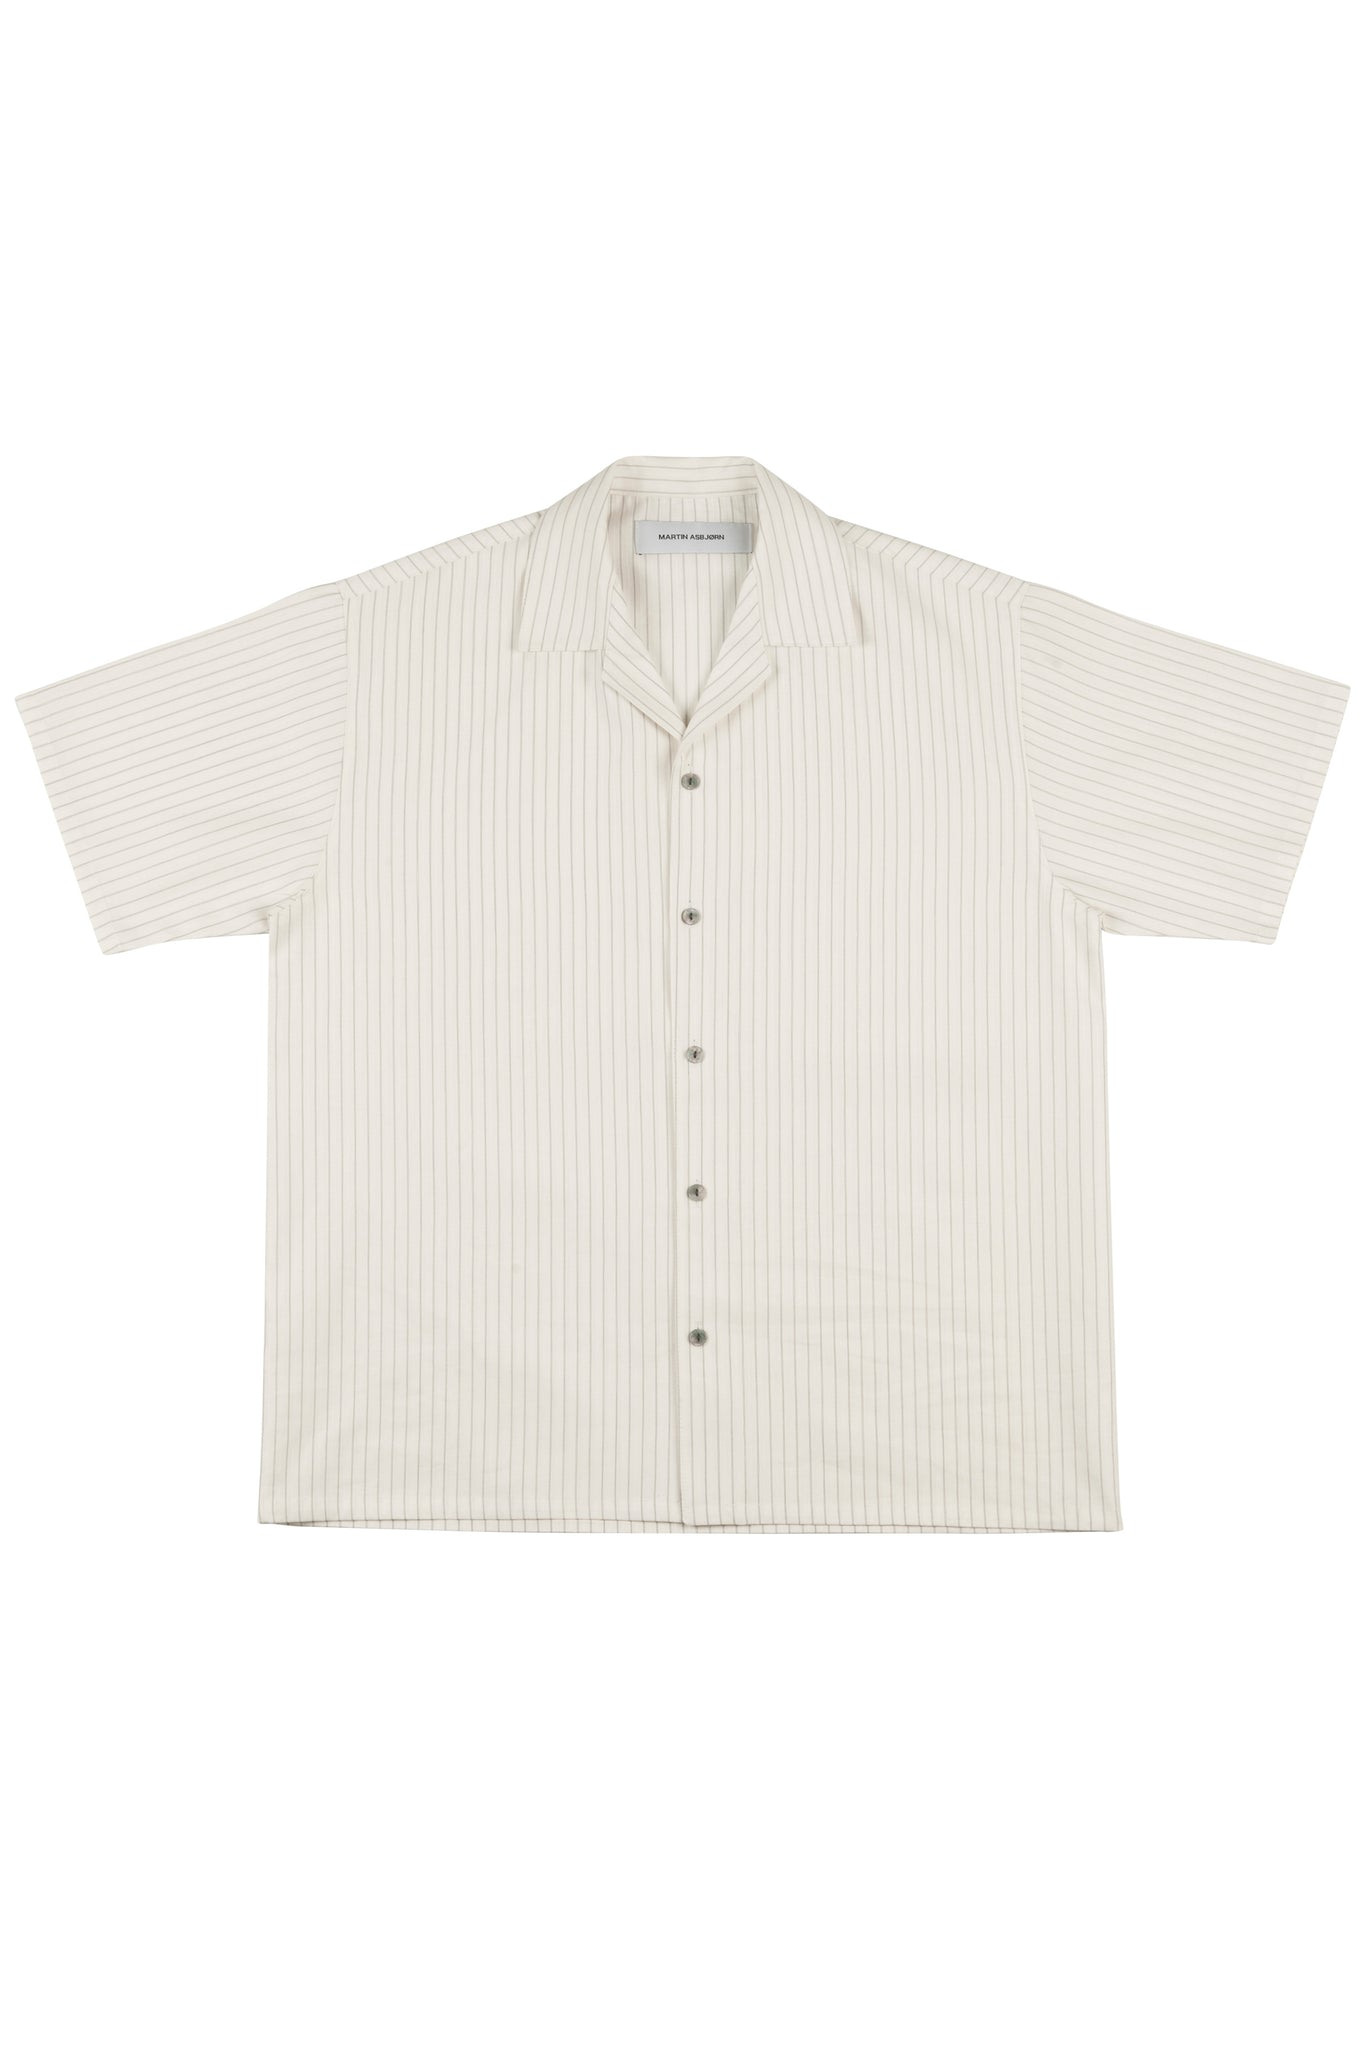 Carter Shirt / Pinstripe